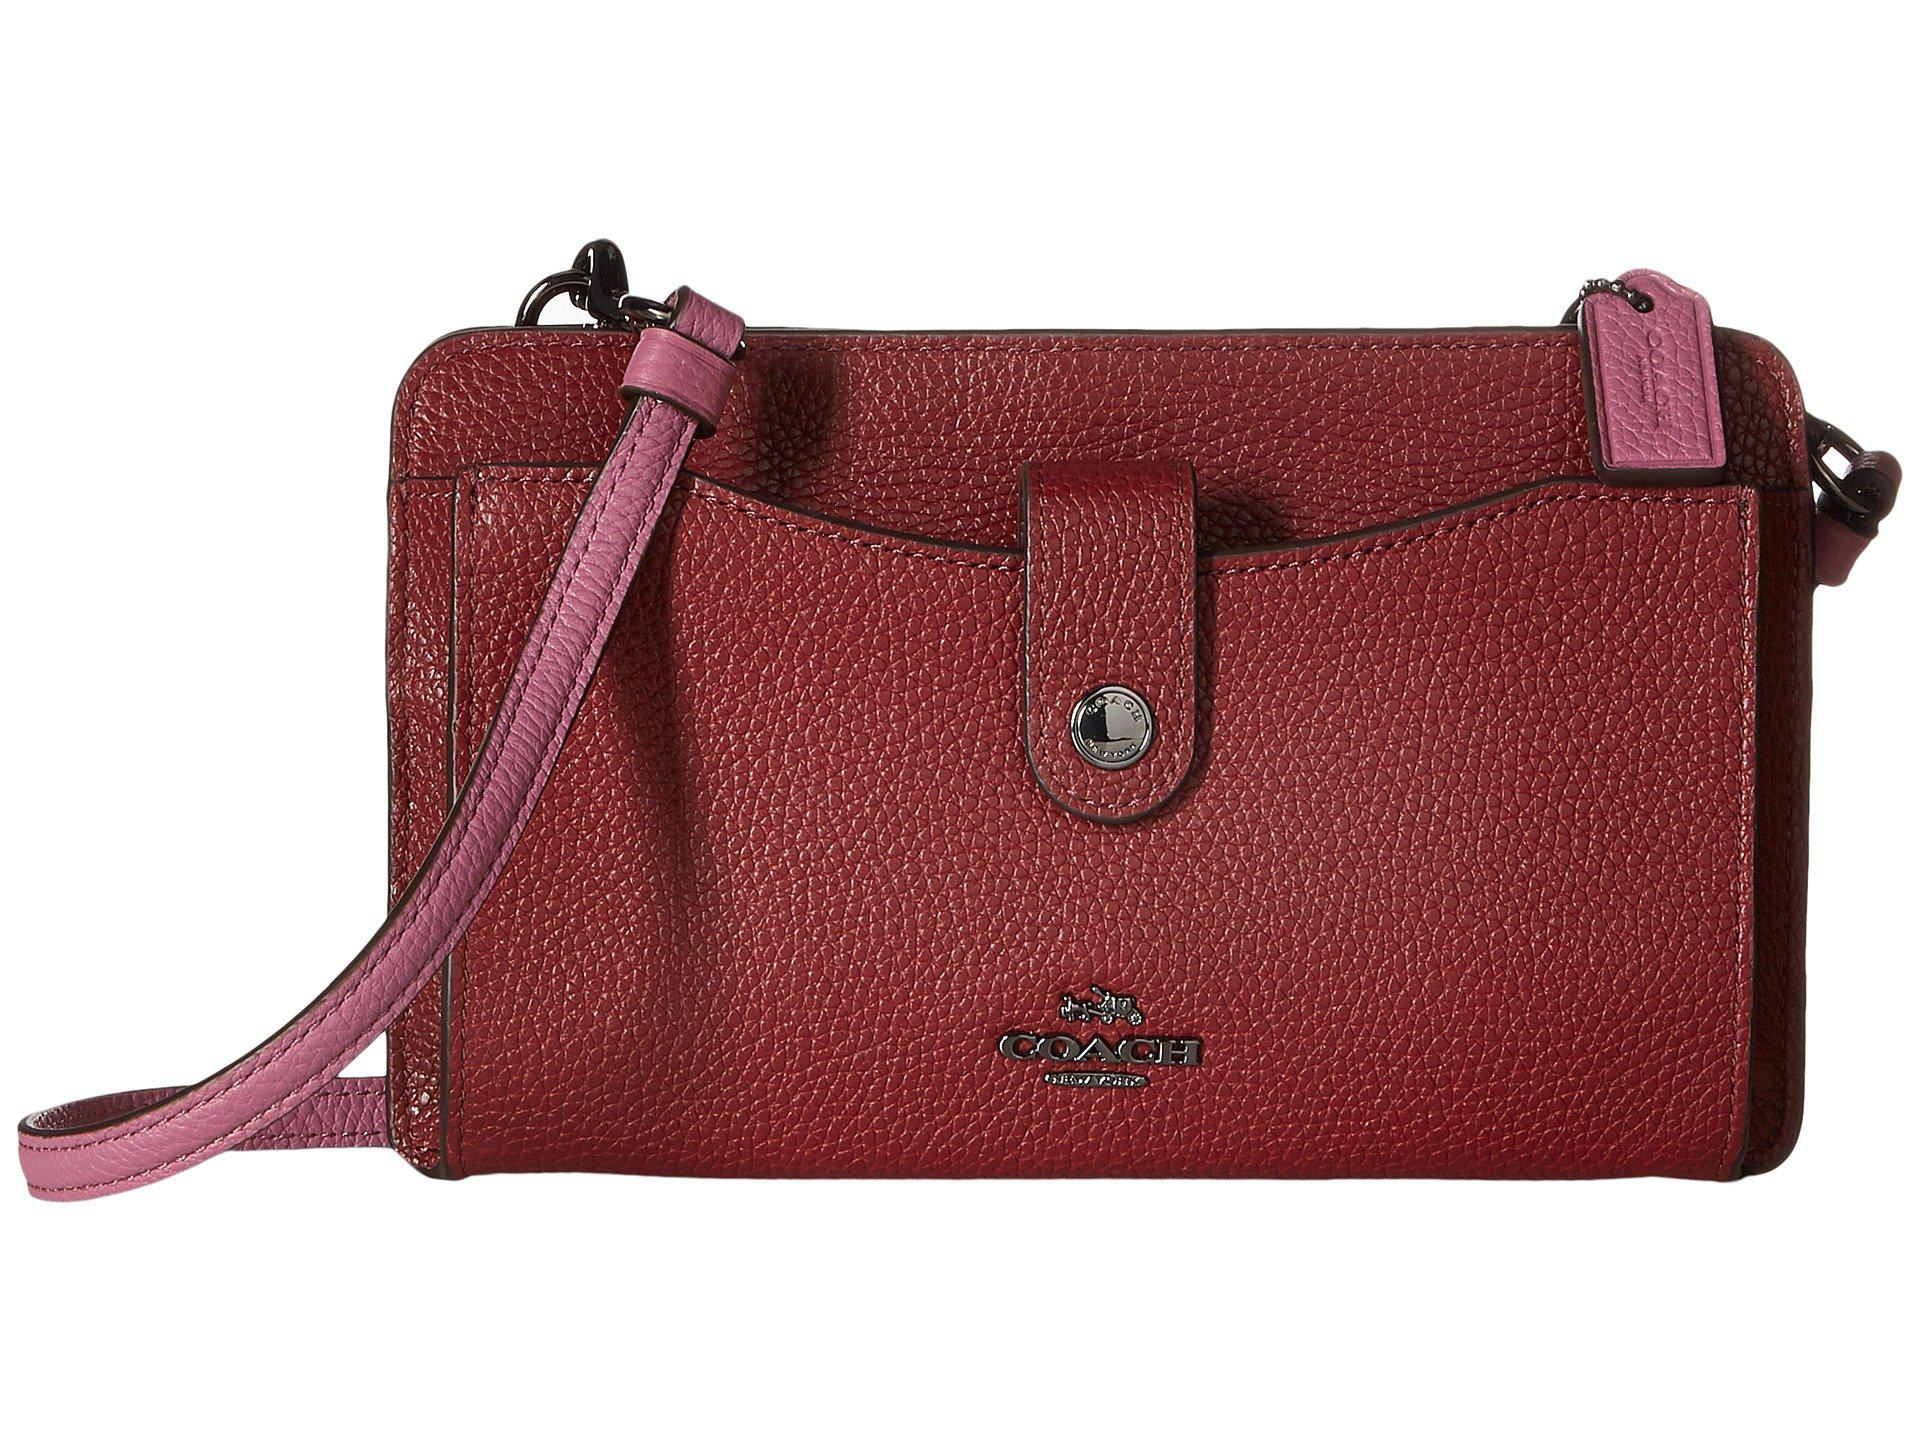 708f3f679c ... switzerland lyst coach pop up messenger in color block leather in red  9656c 92c6e